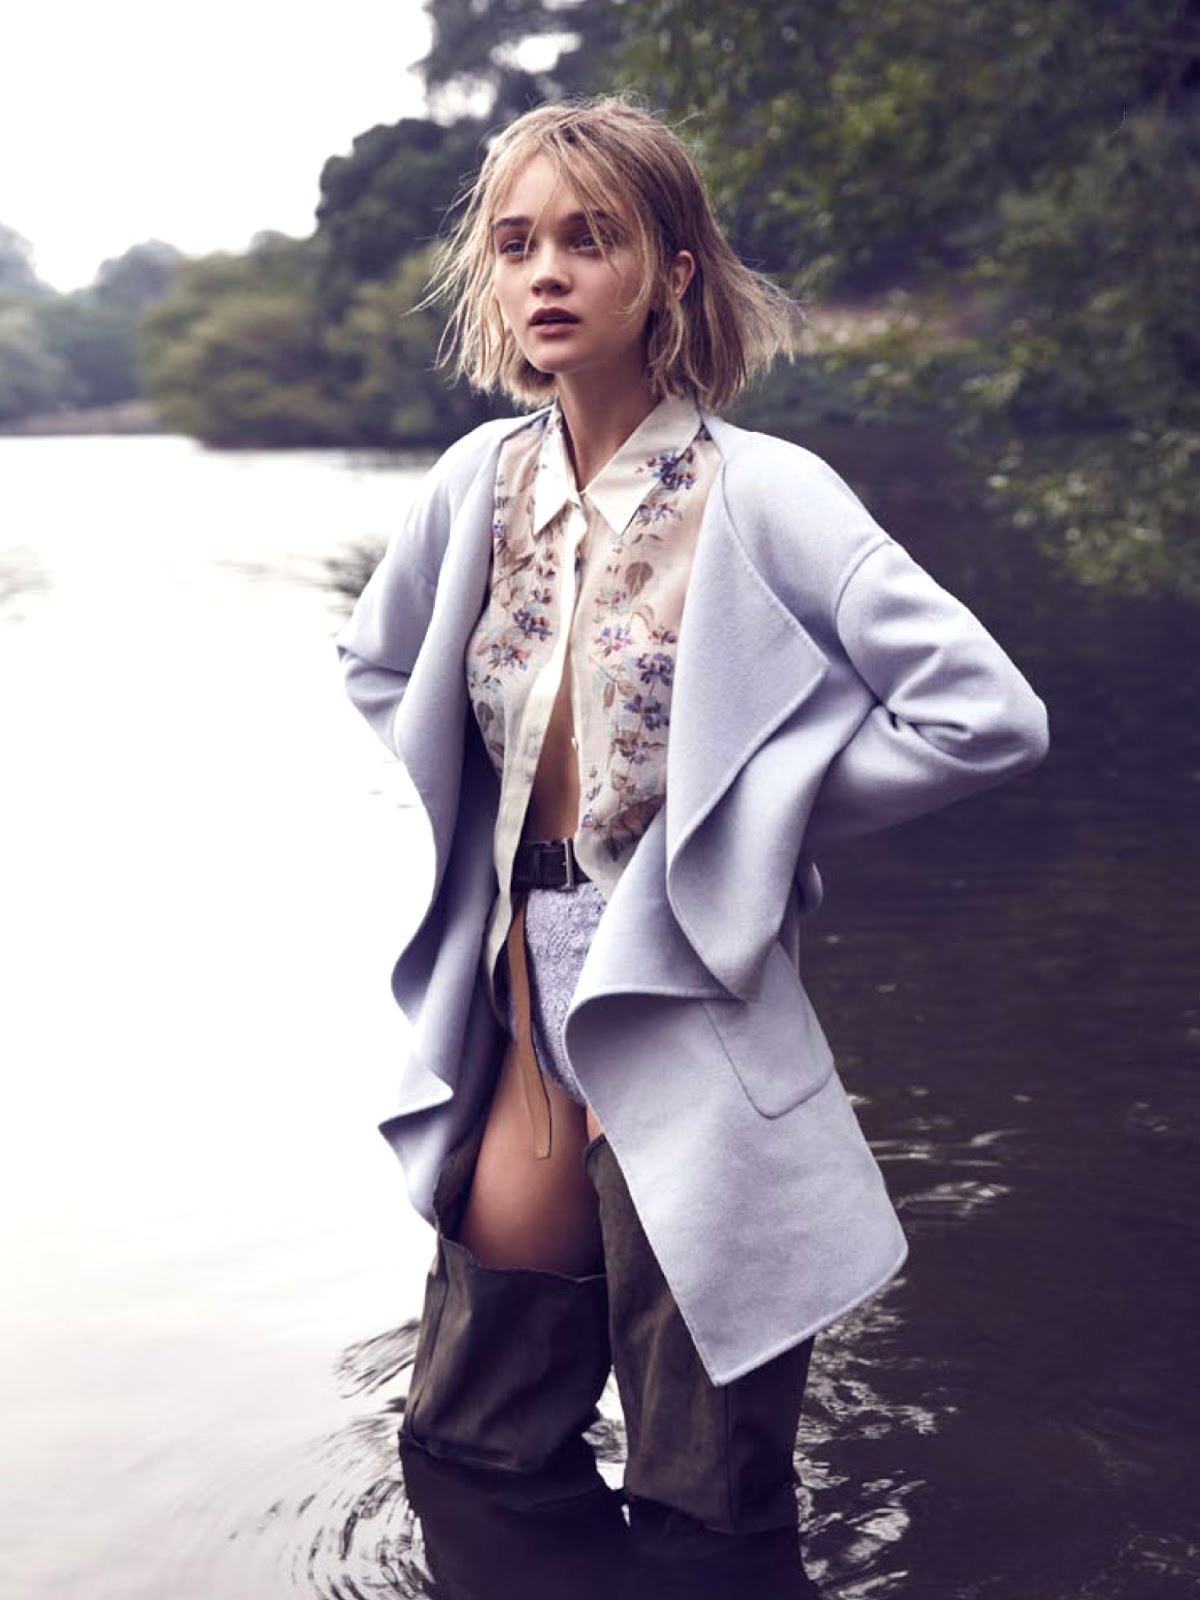 Marie Claire Australia May 2014 (photography: Nicole Bentley, styling: Jana Pokorny)